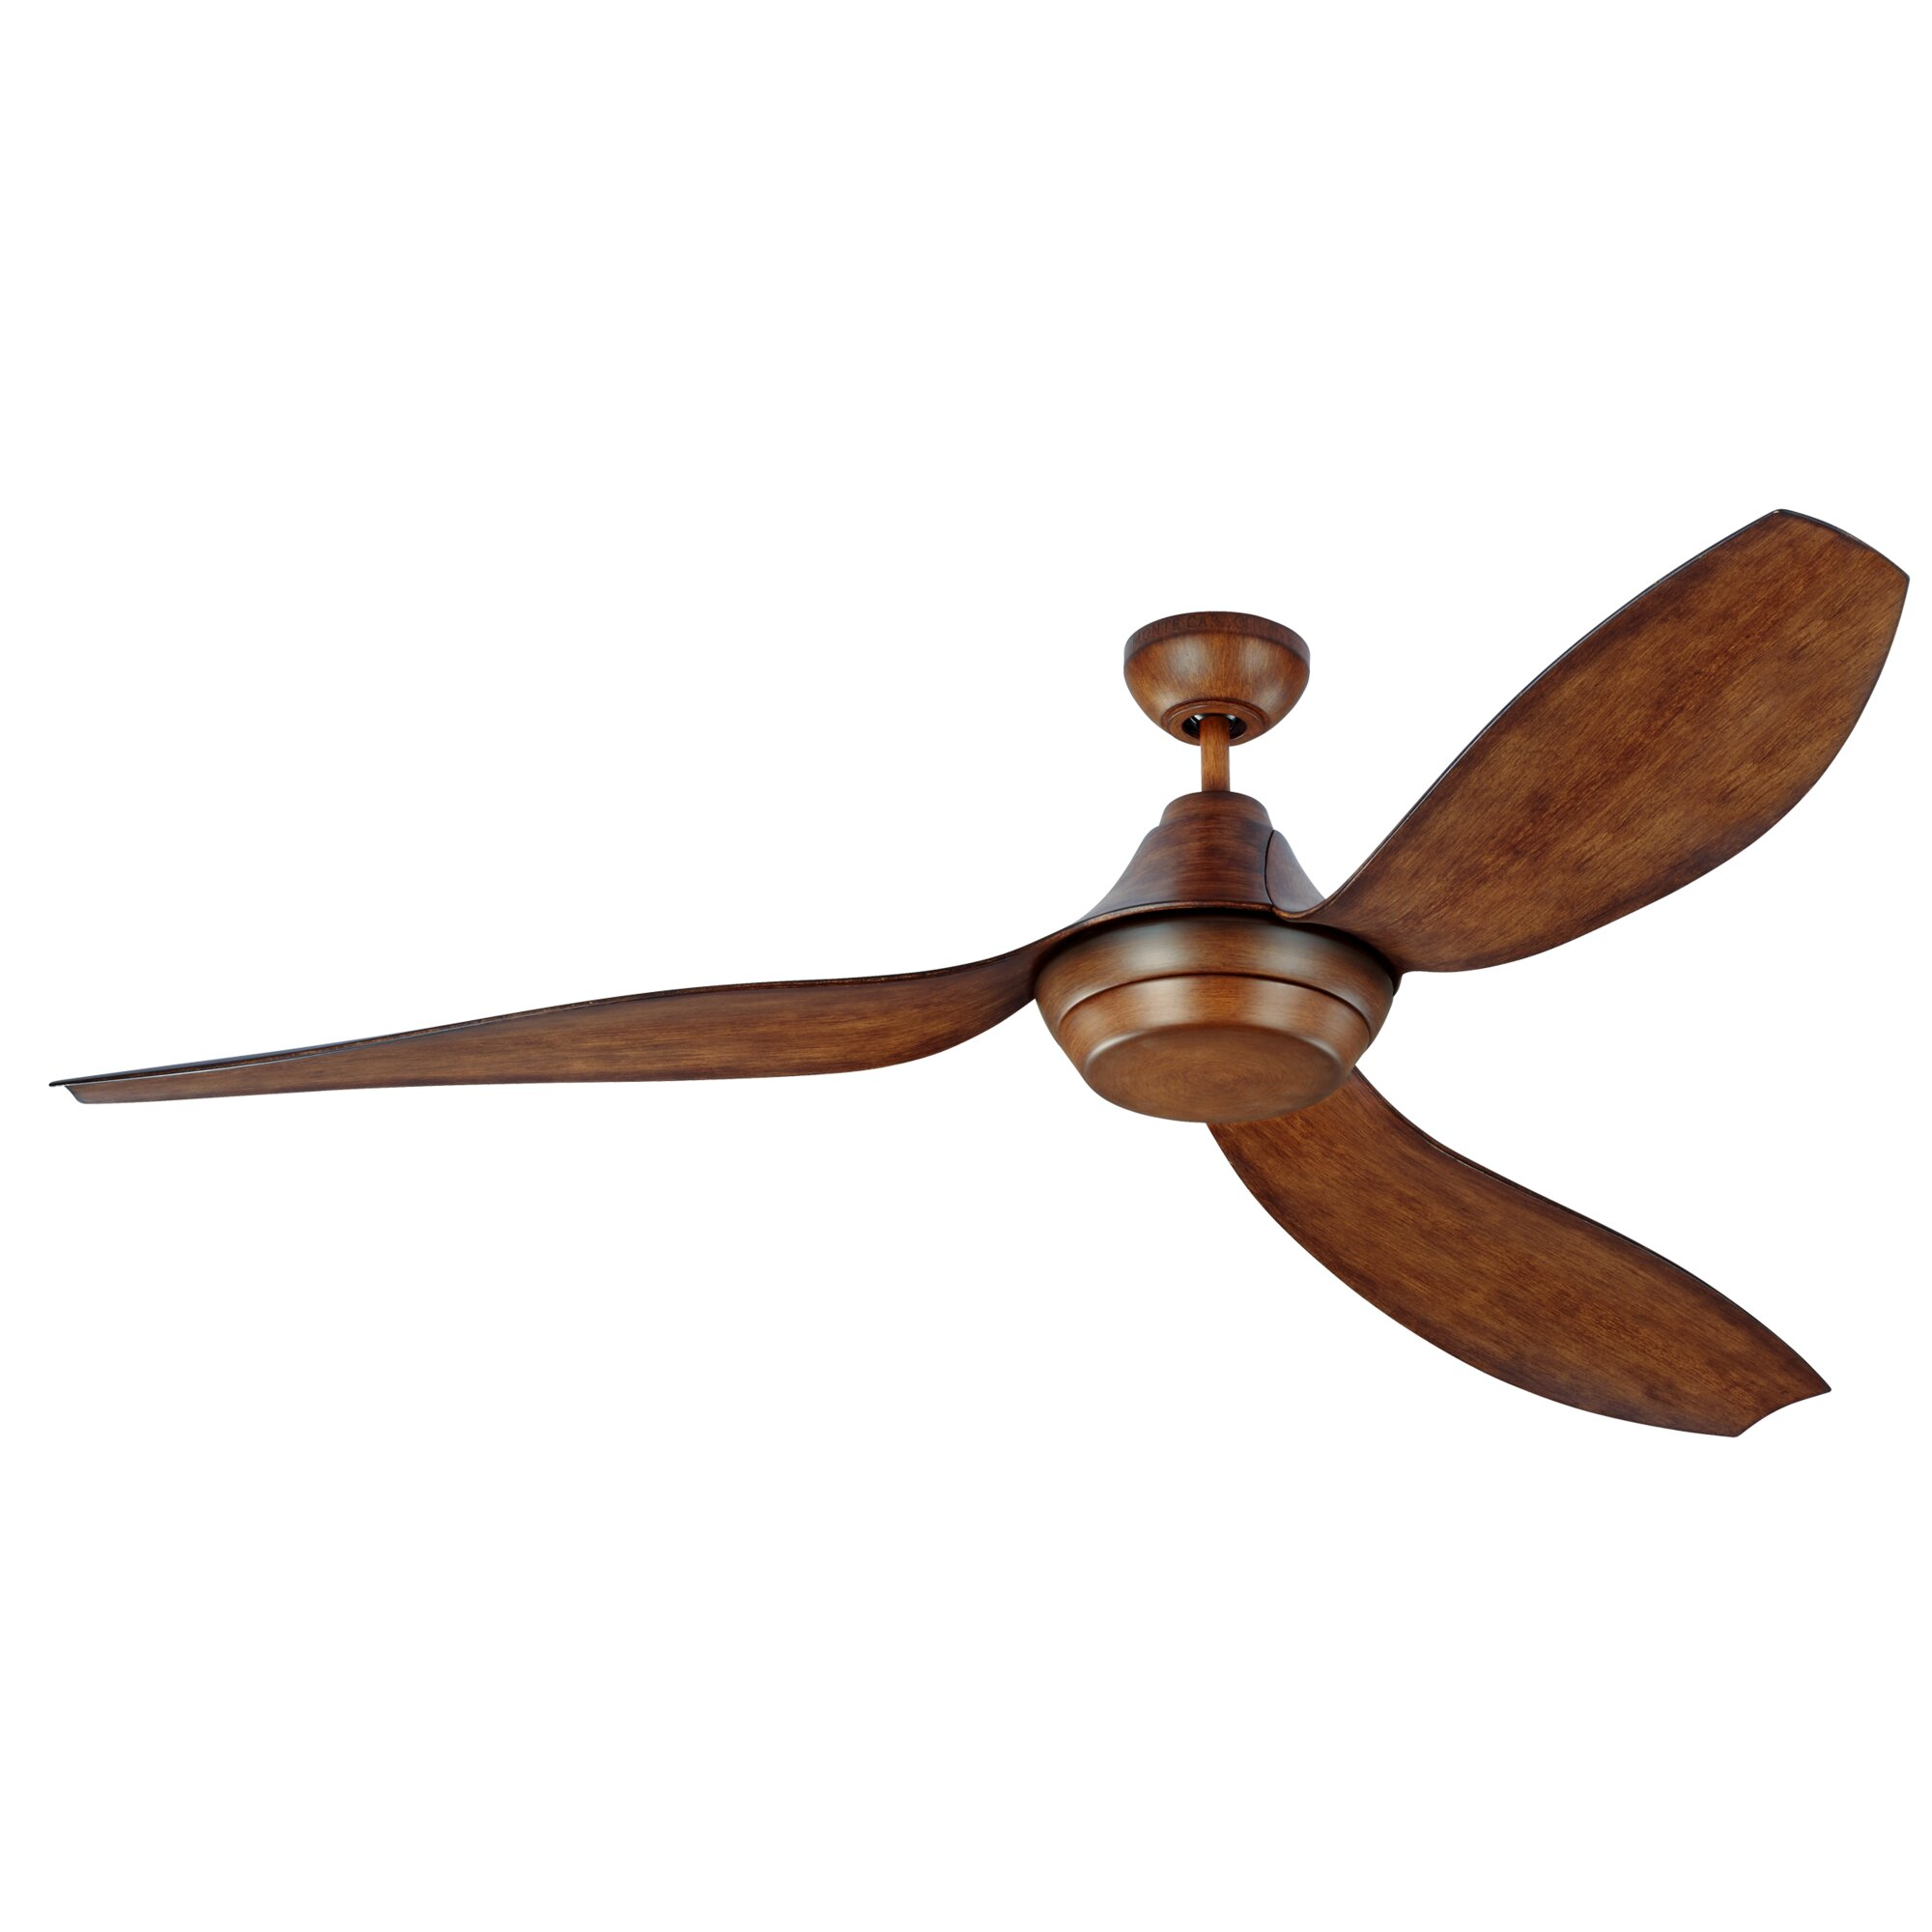 Brayden Studio 64 Quot Dorsch 3 Blade Ceiling Fan With Remote